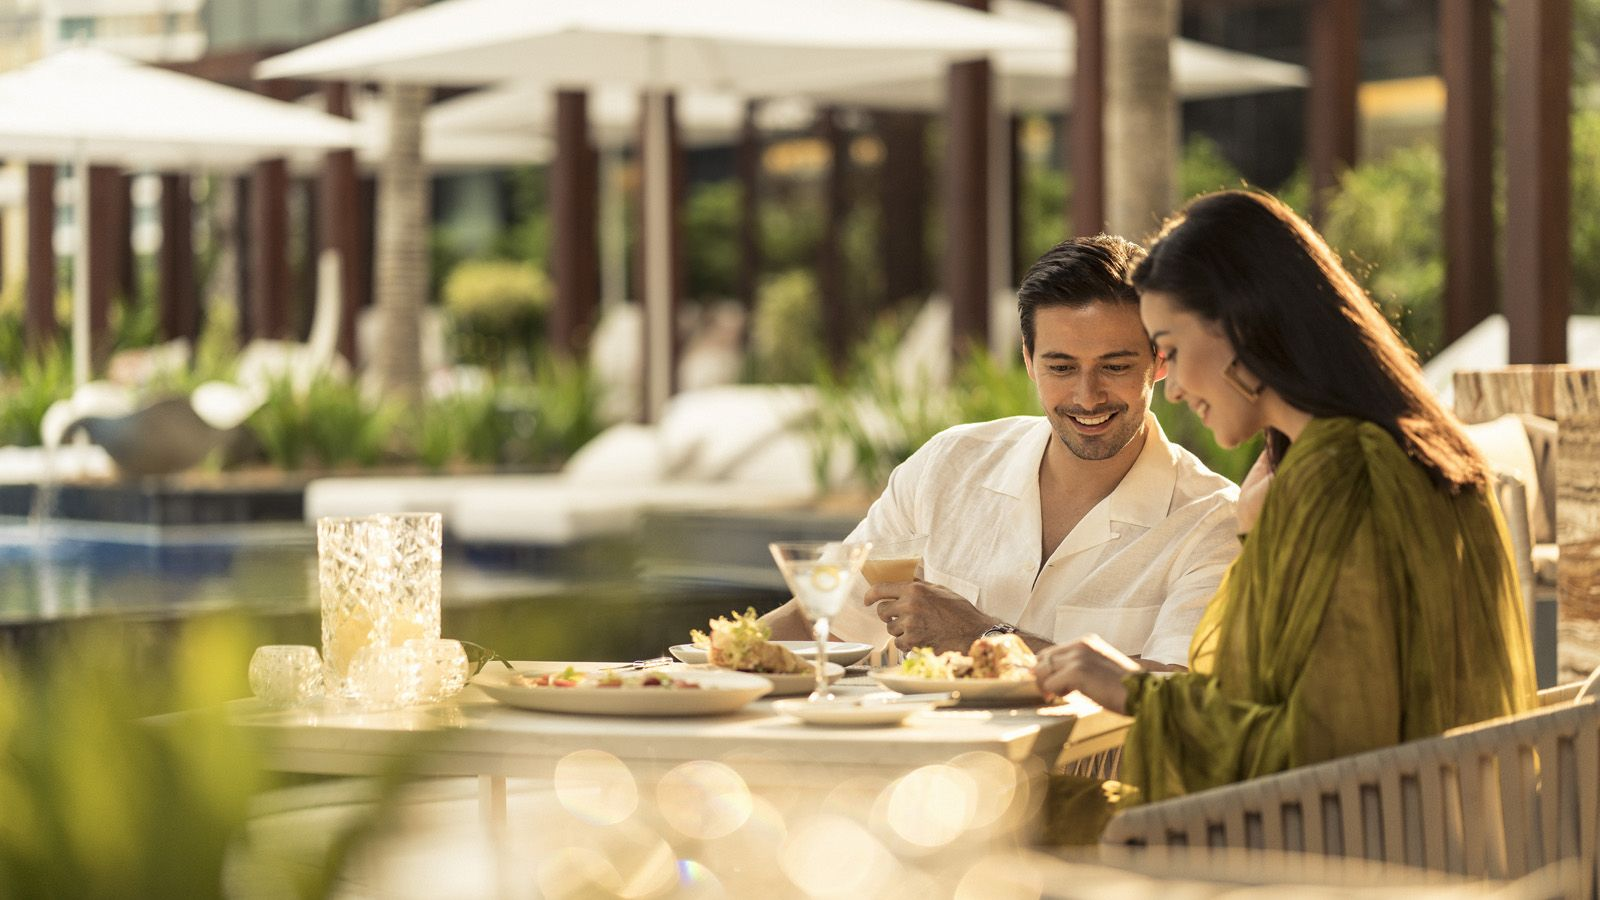 Four Seasons Hotel Kuala Lumpur's Irresistible Self-Care & Work-From-Hotel Deals